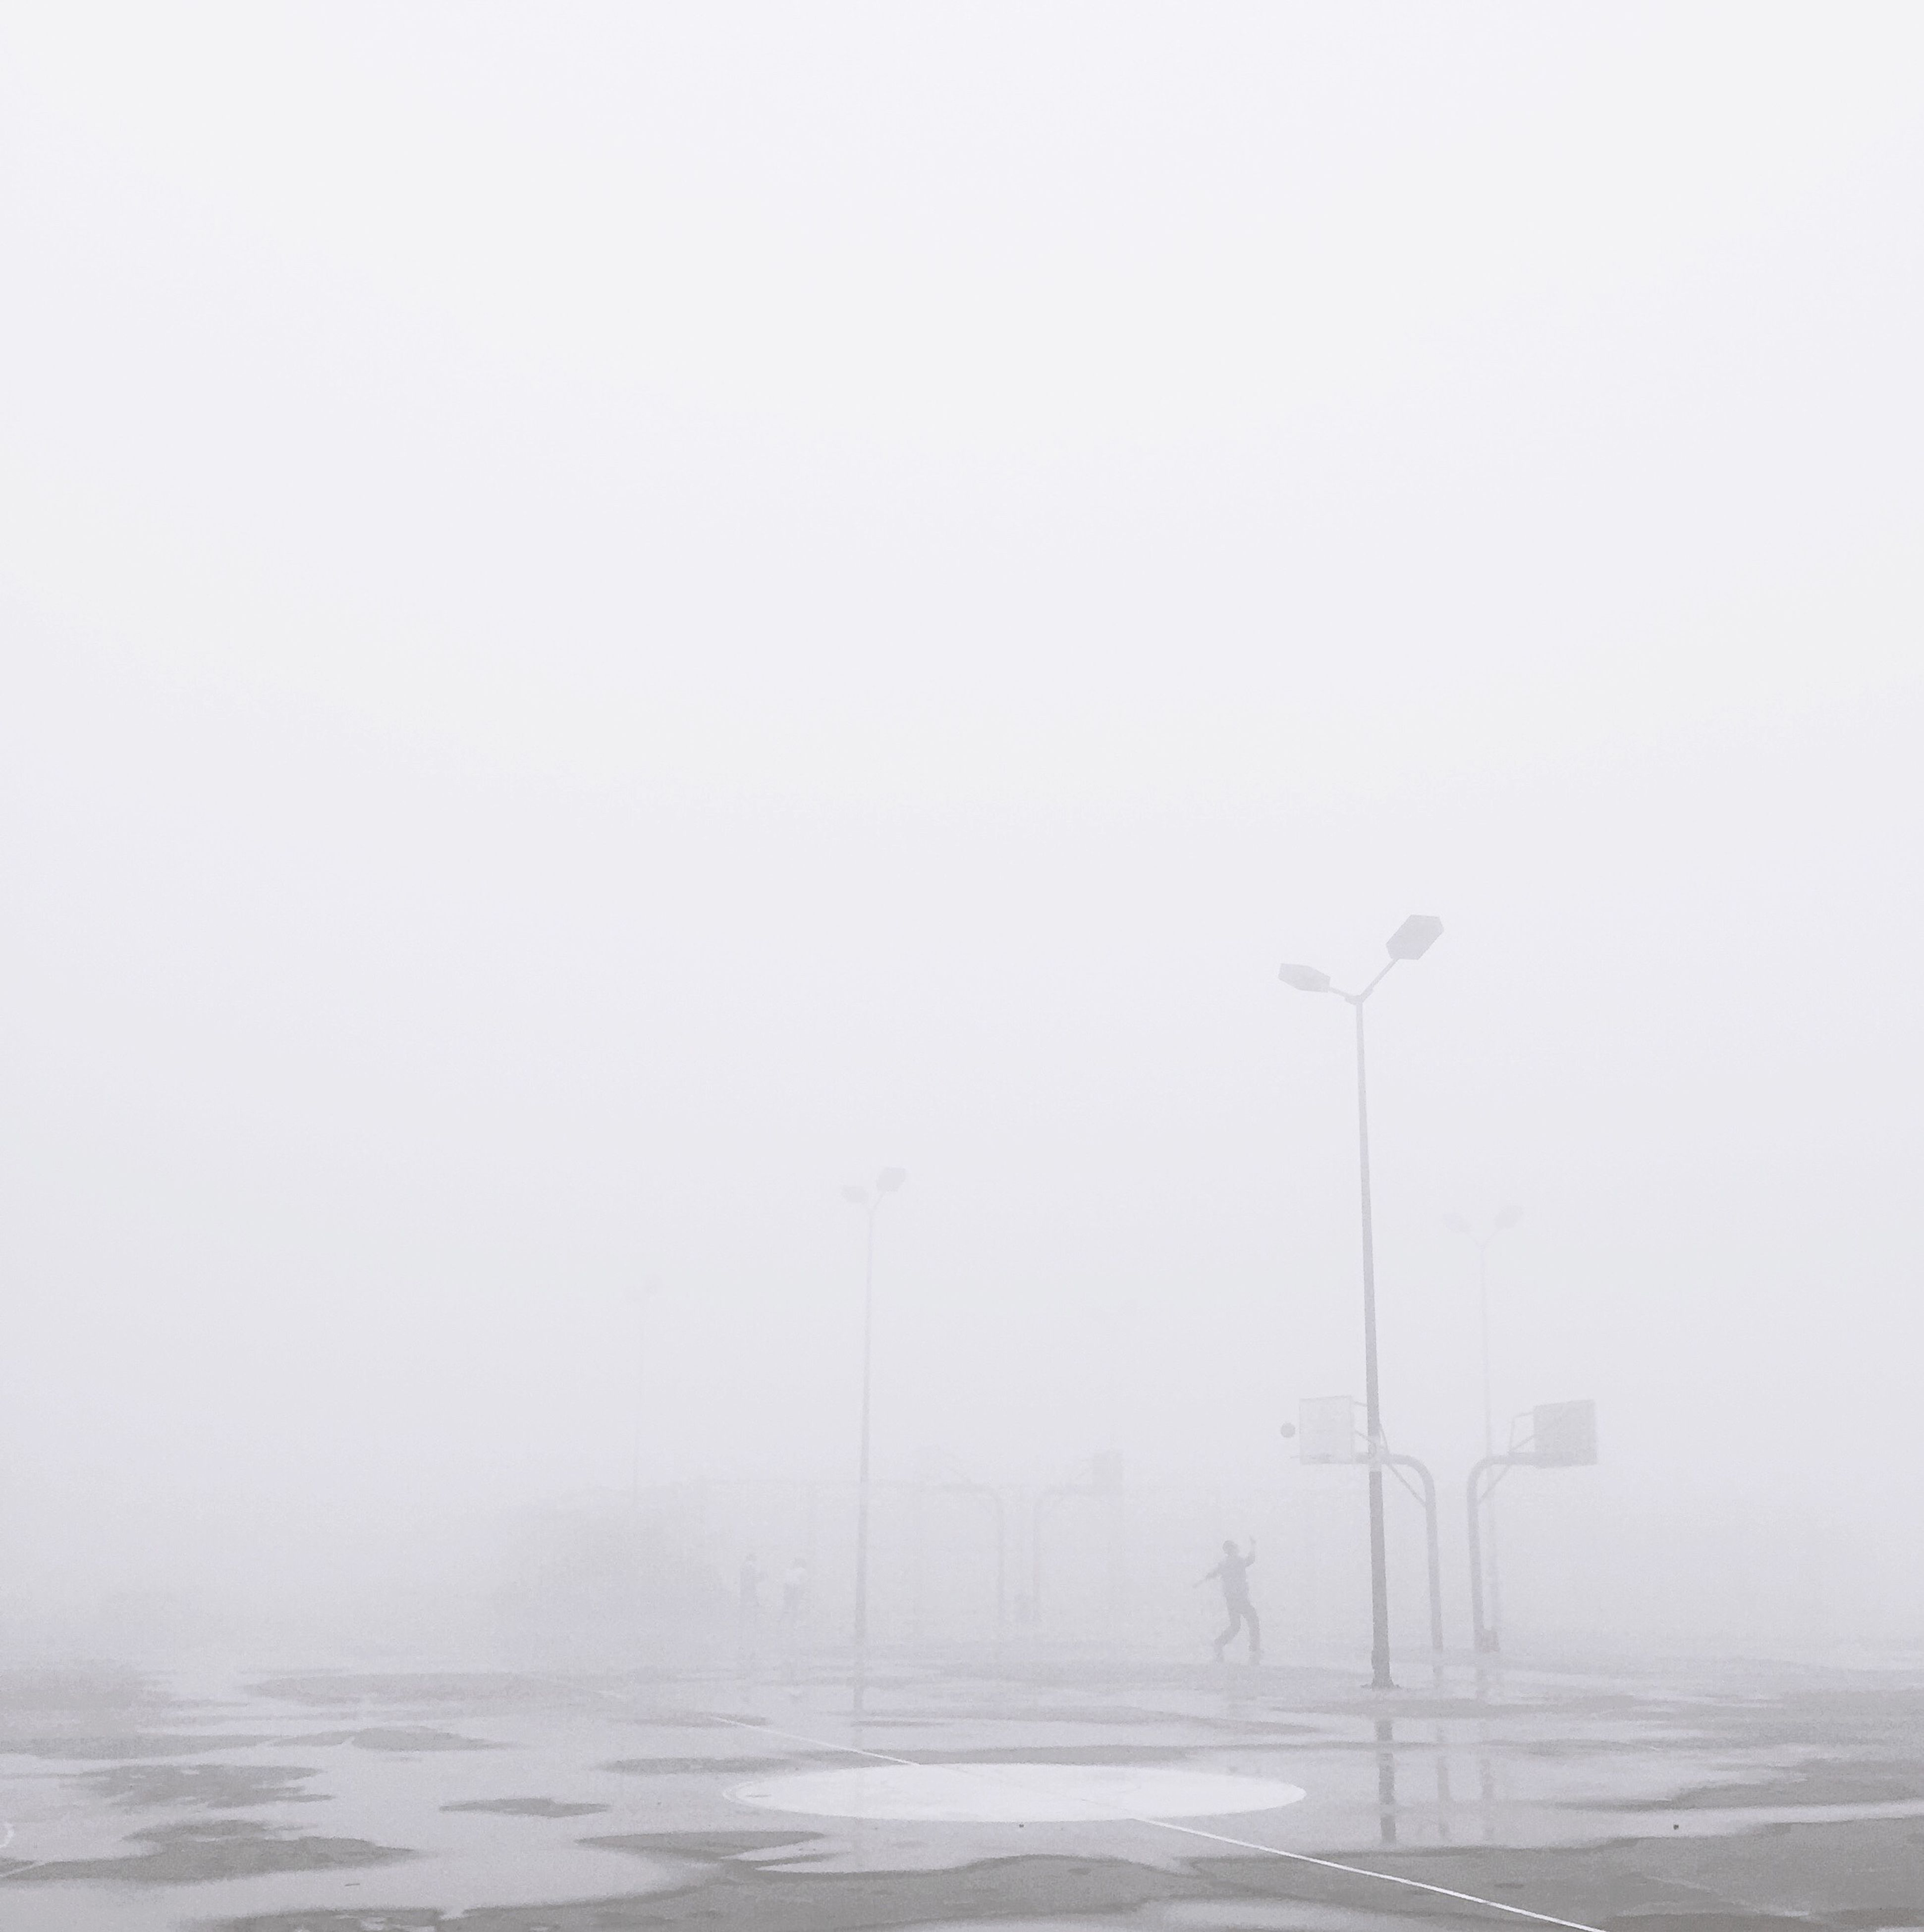 copy space, fog, water, nature, no people, outdoors, day, beauty in nature, sky